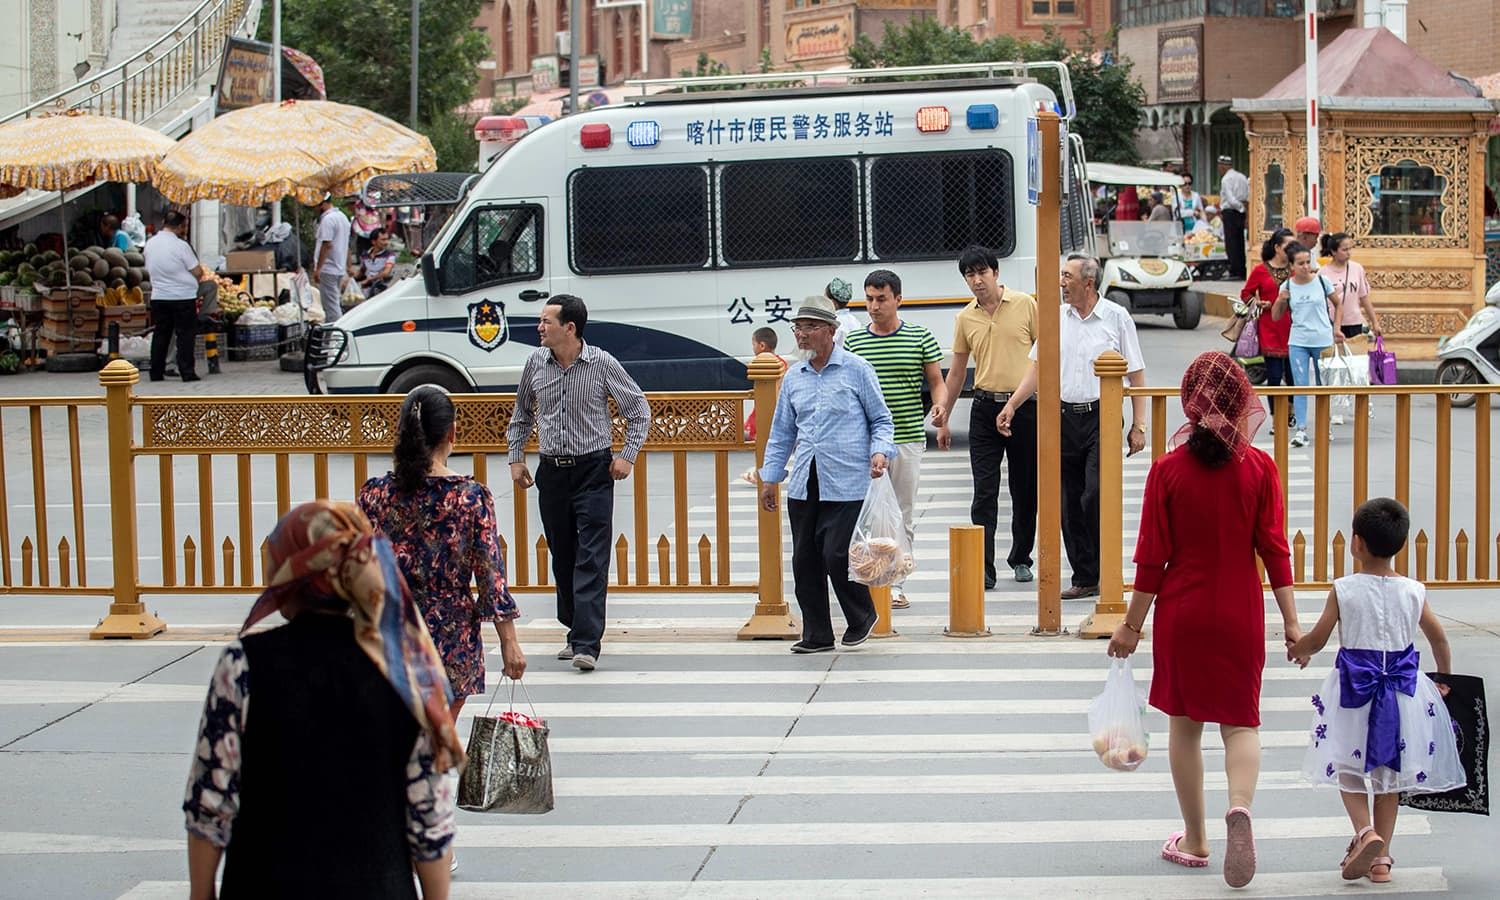 A police vehicle patrols the streets near the Id Kah Mosque in Kashgar. — AFP